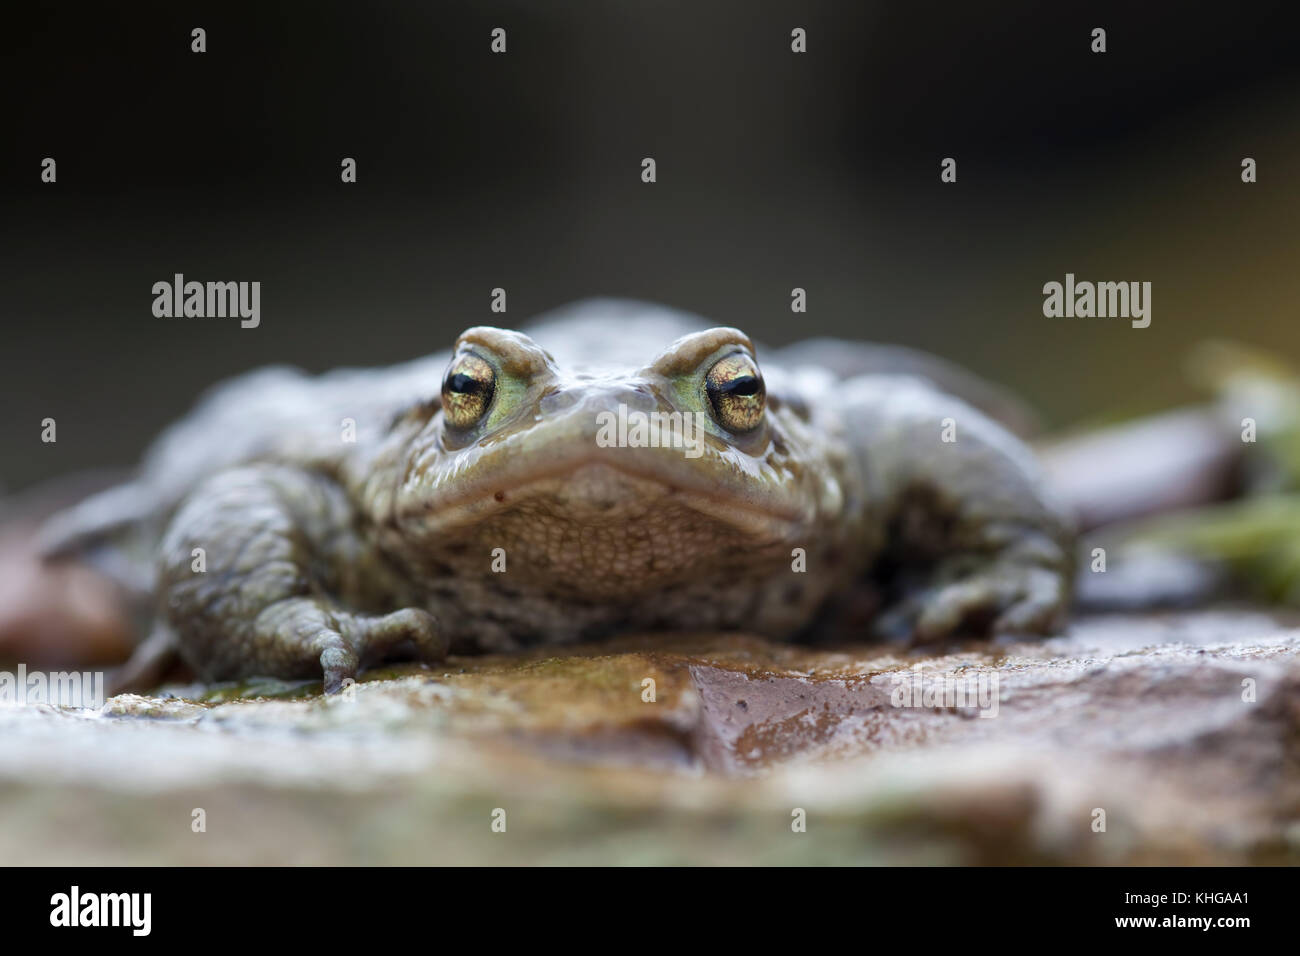 Common frog  Rana temporaria extreme close up face on - Stock Image